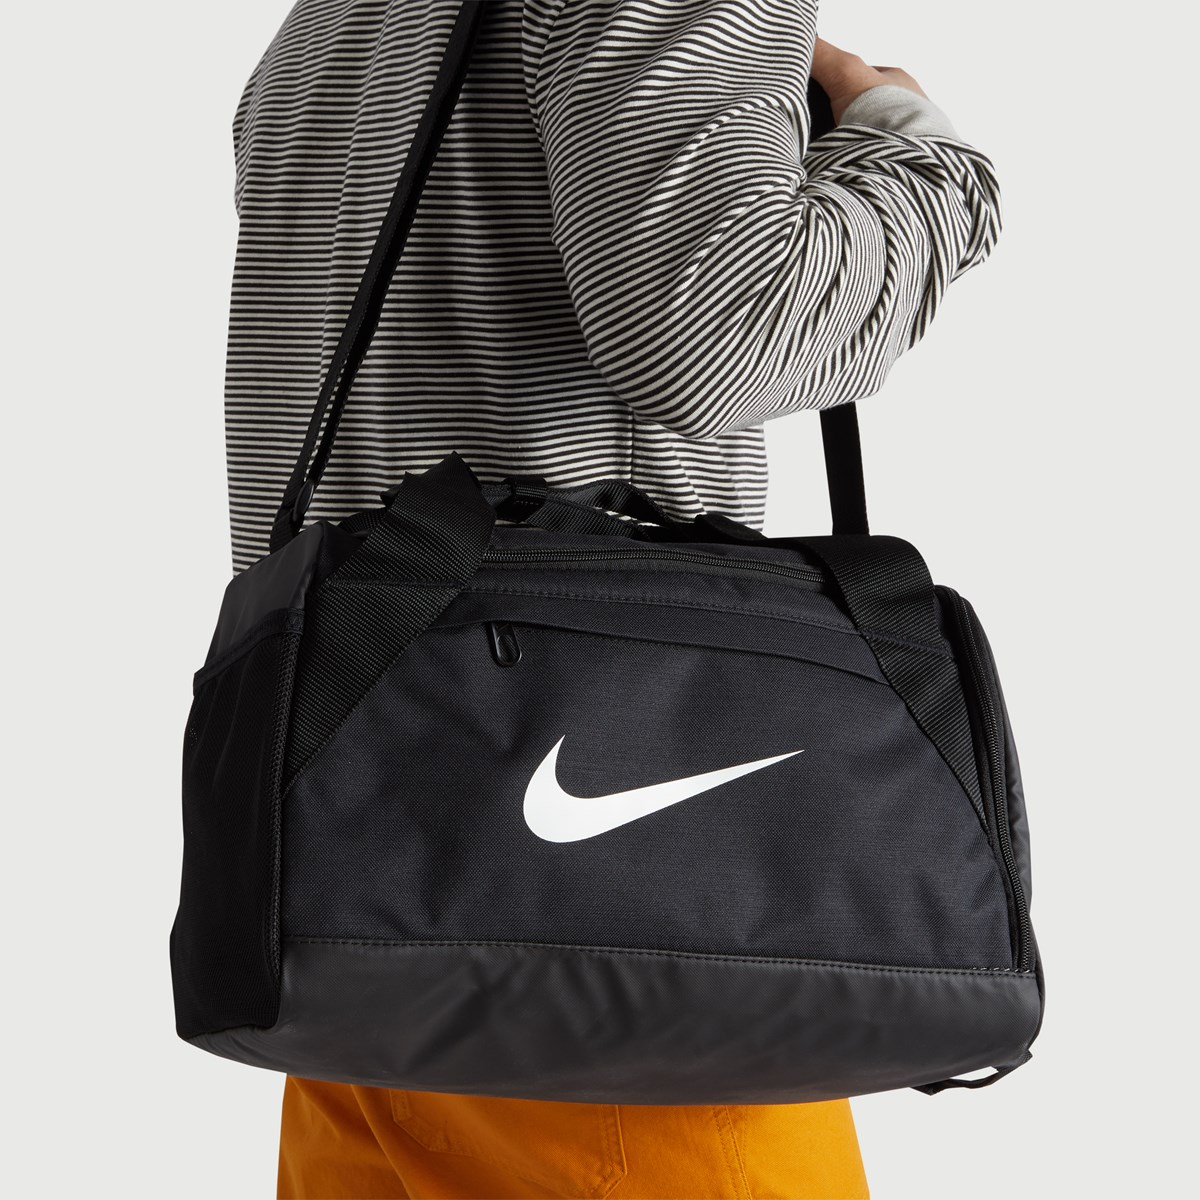 Brasilia Duffle Bag in Black